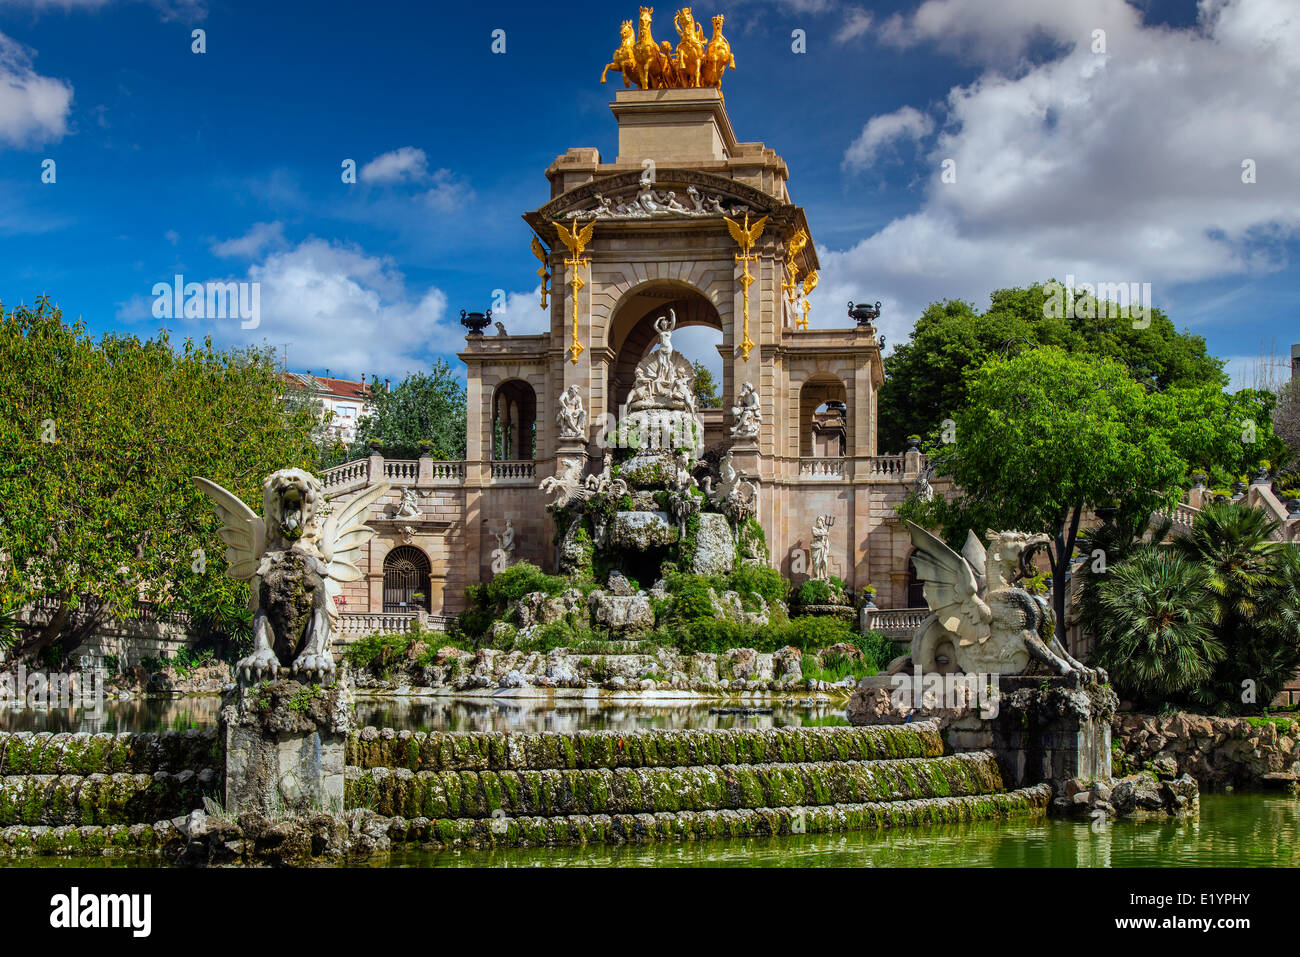 Fountain with waterfall at Parc de la Ciutadella or Ciutadella Park, Barcelona, Catalonia, Spain - Stock Image